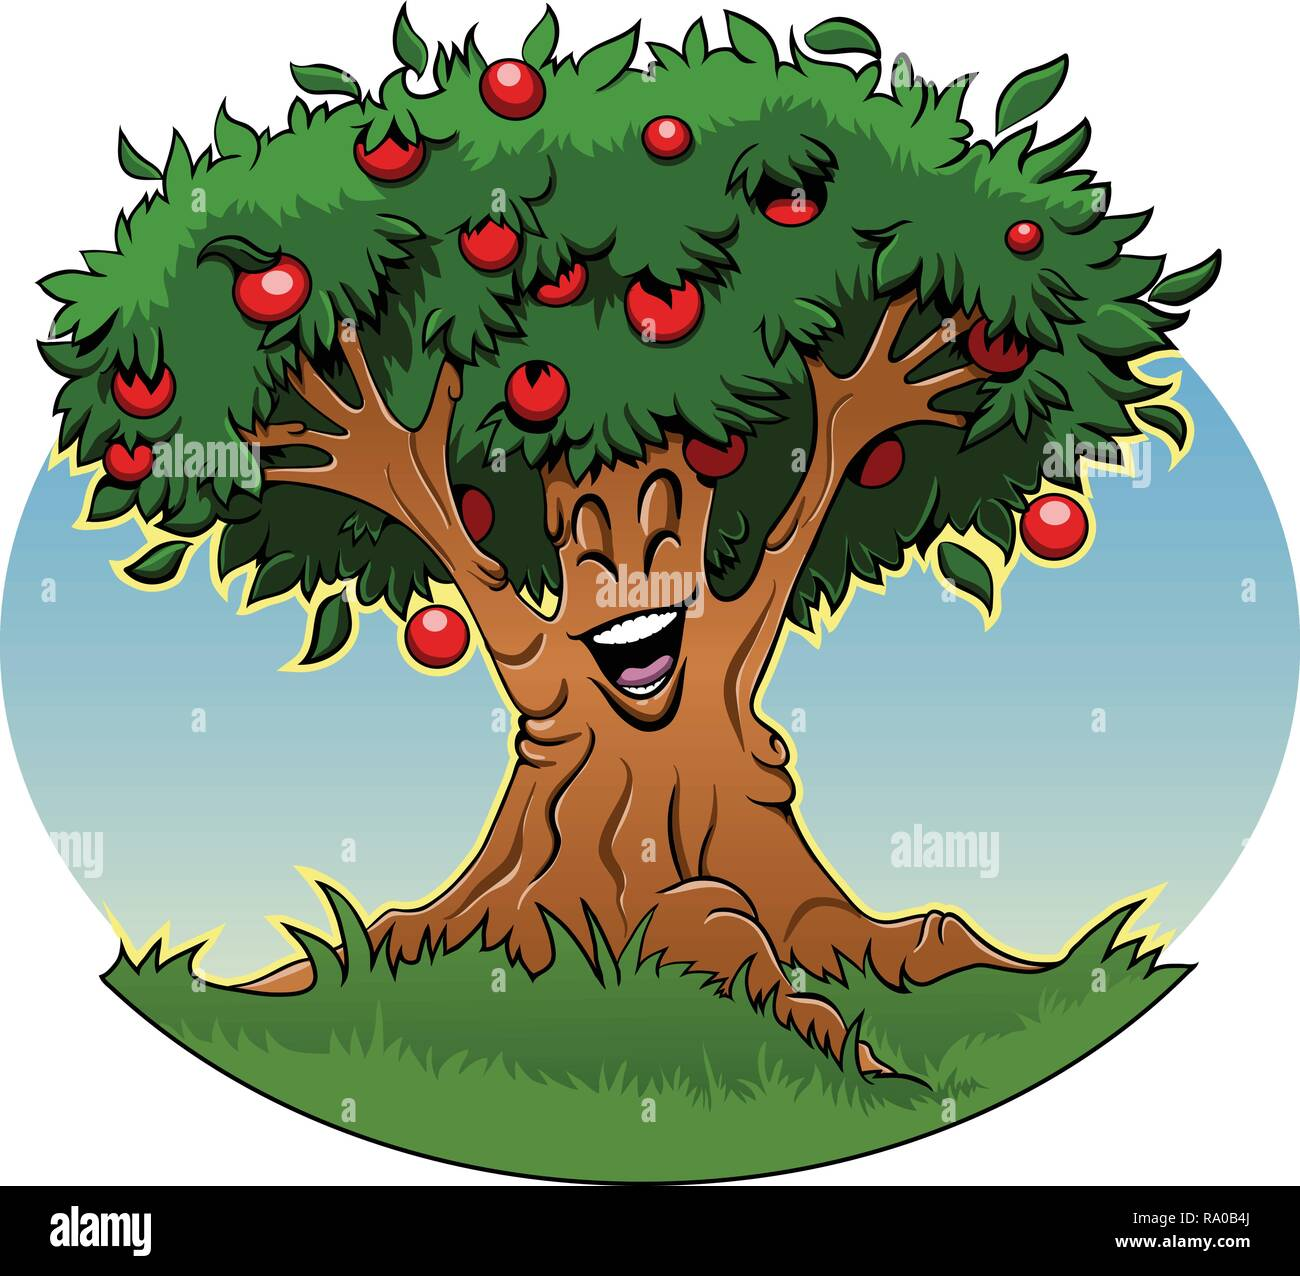 Cartoon illustration: Smiling apple tree spreading its branches - Stock Image